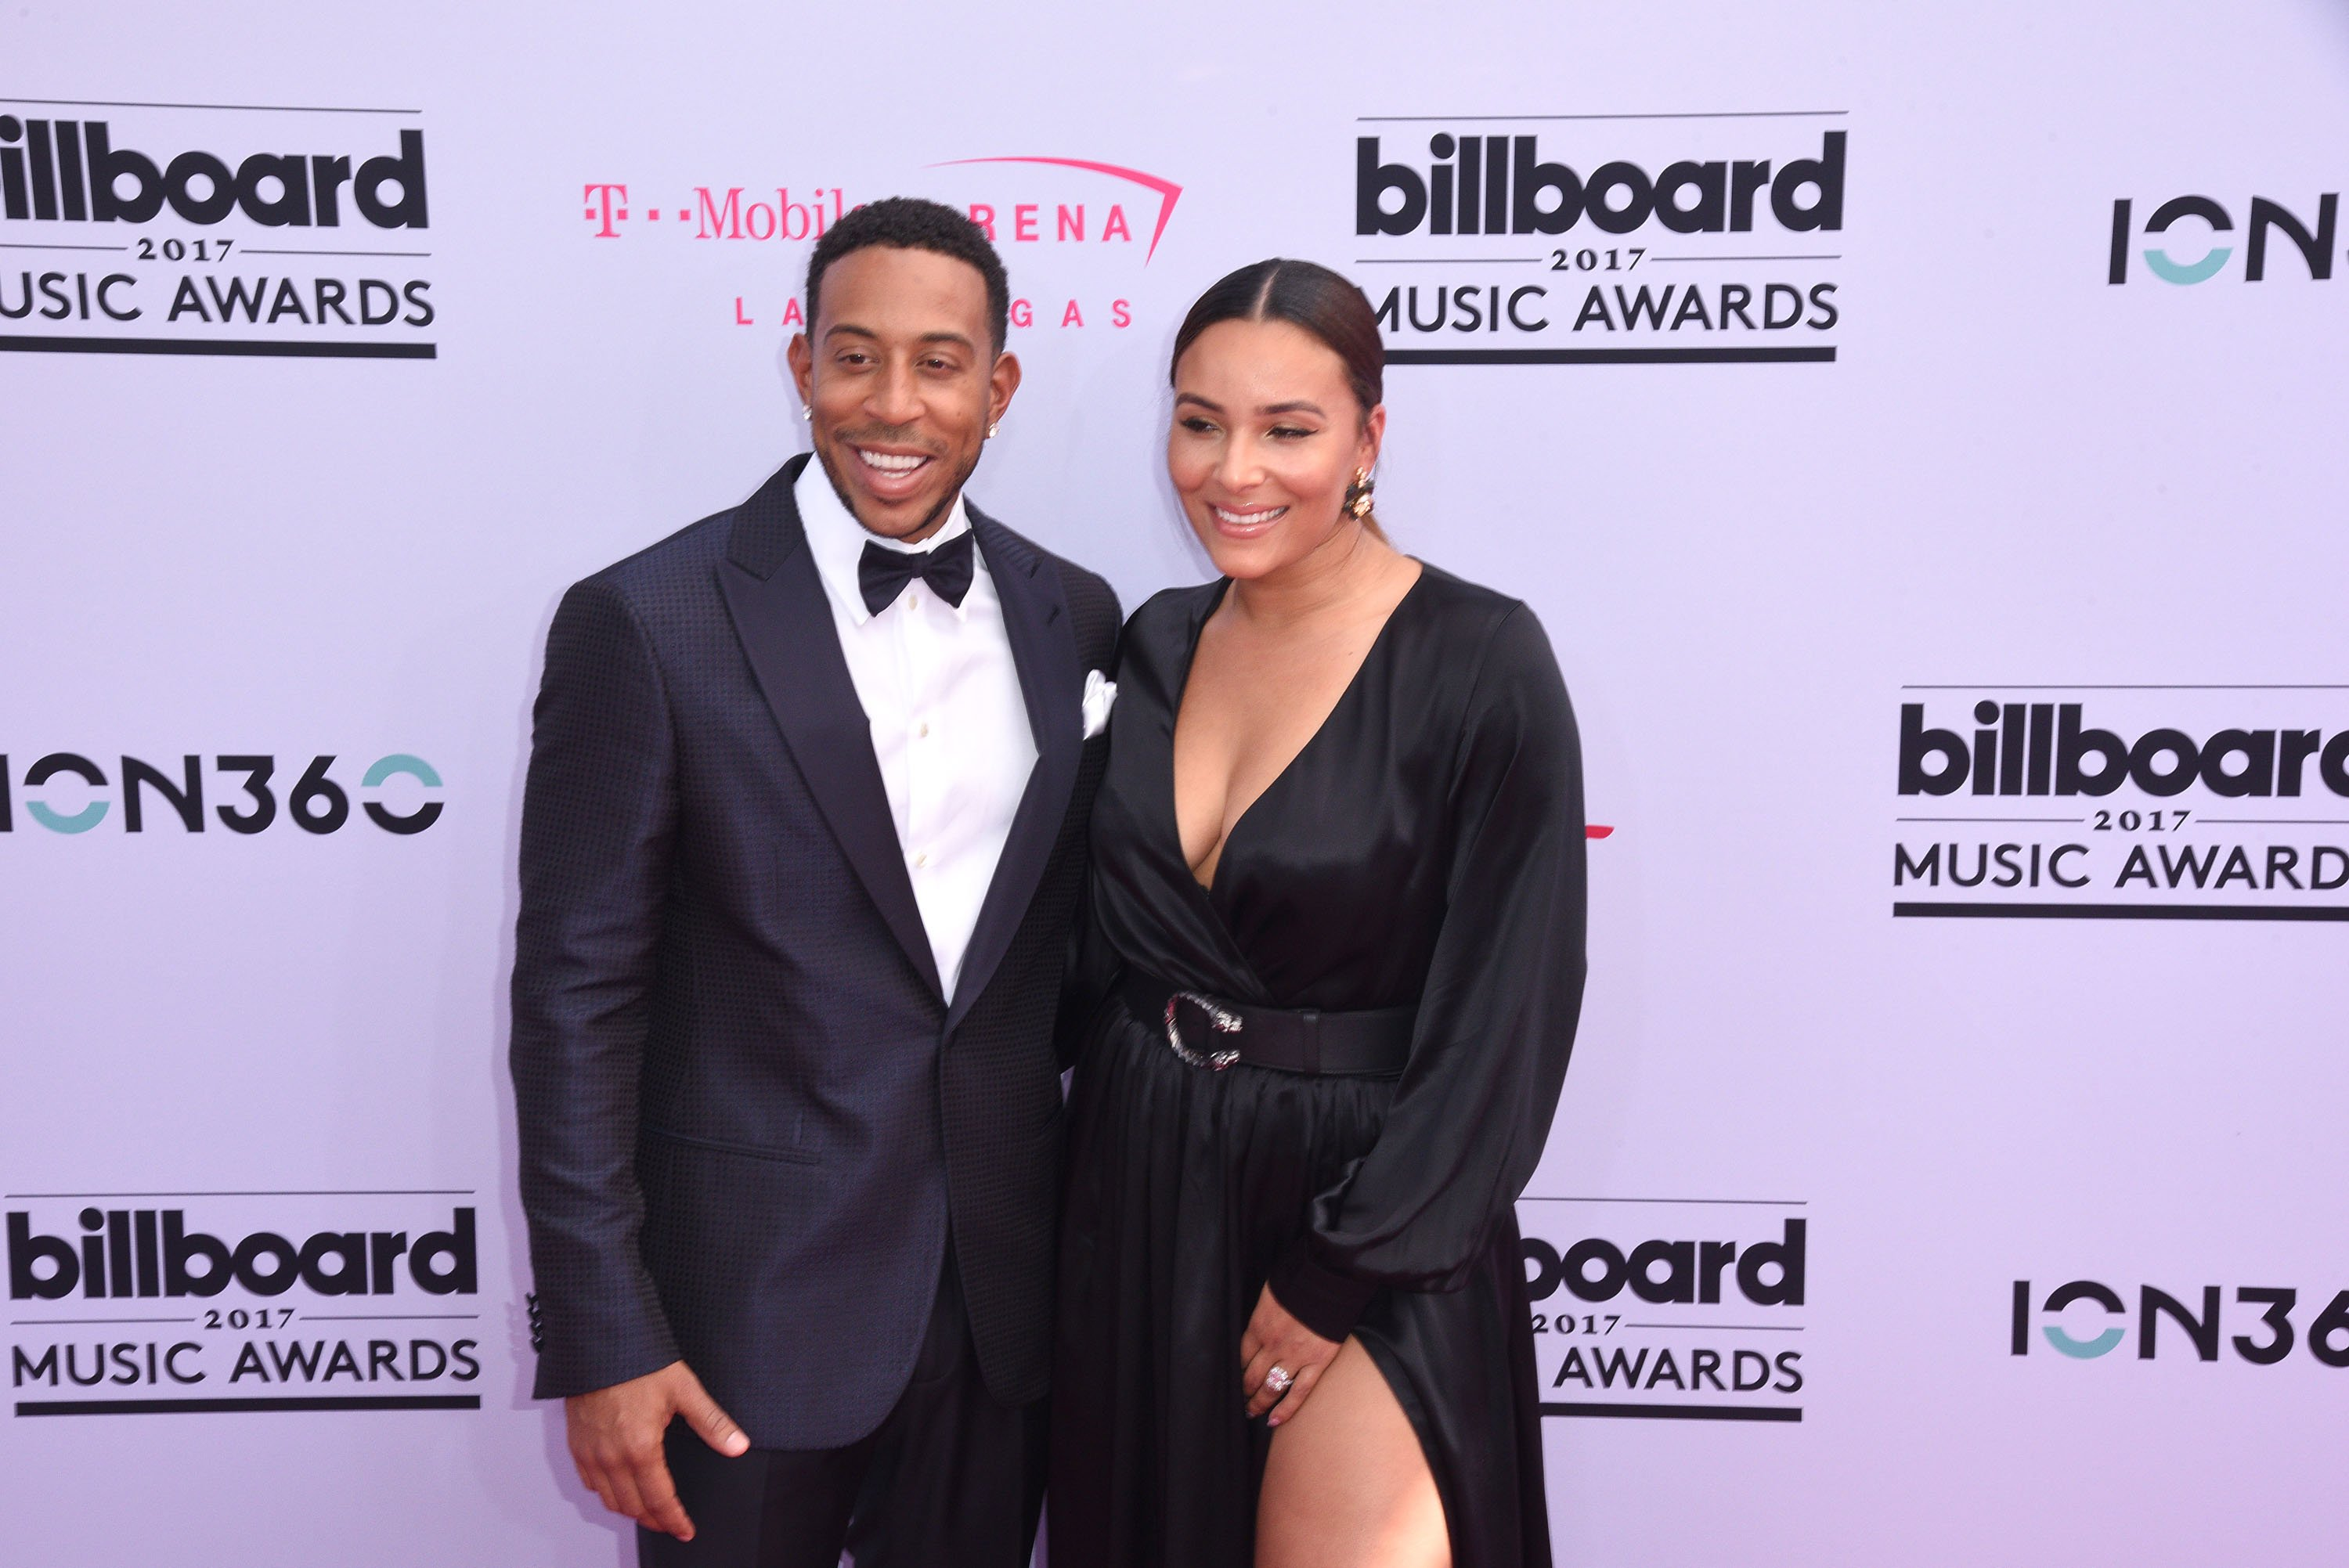 Ludacris and wife Eudoxie Mbouguiengue at the 2017 Billboard Music Awards in Las Vegas   Source: Getty Images